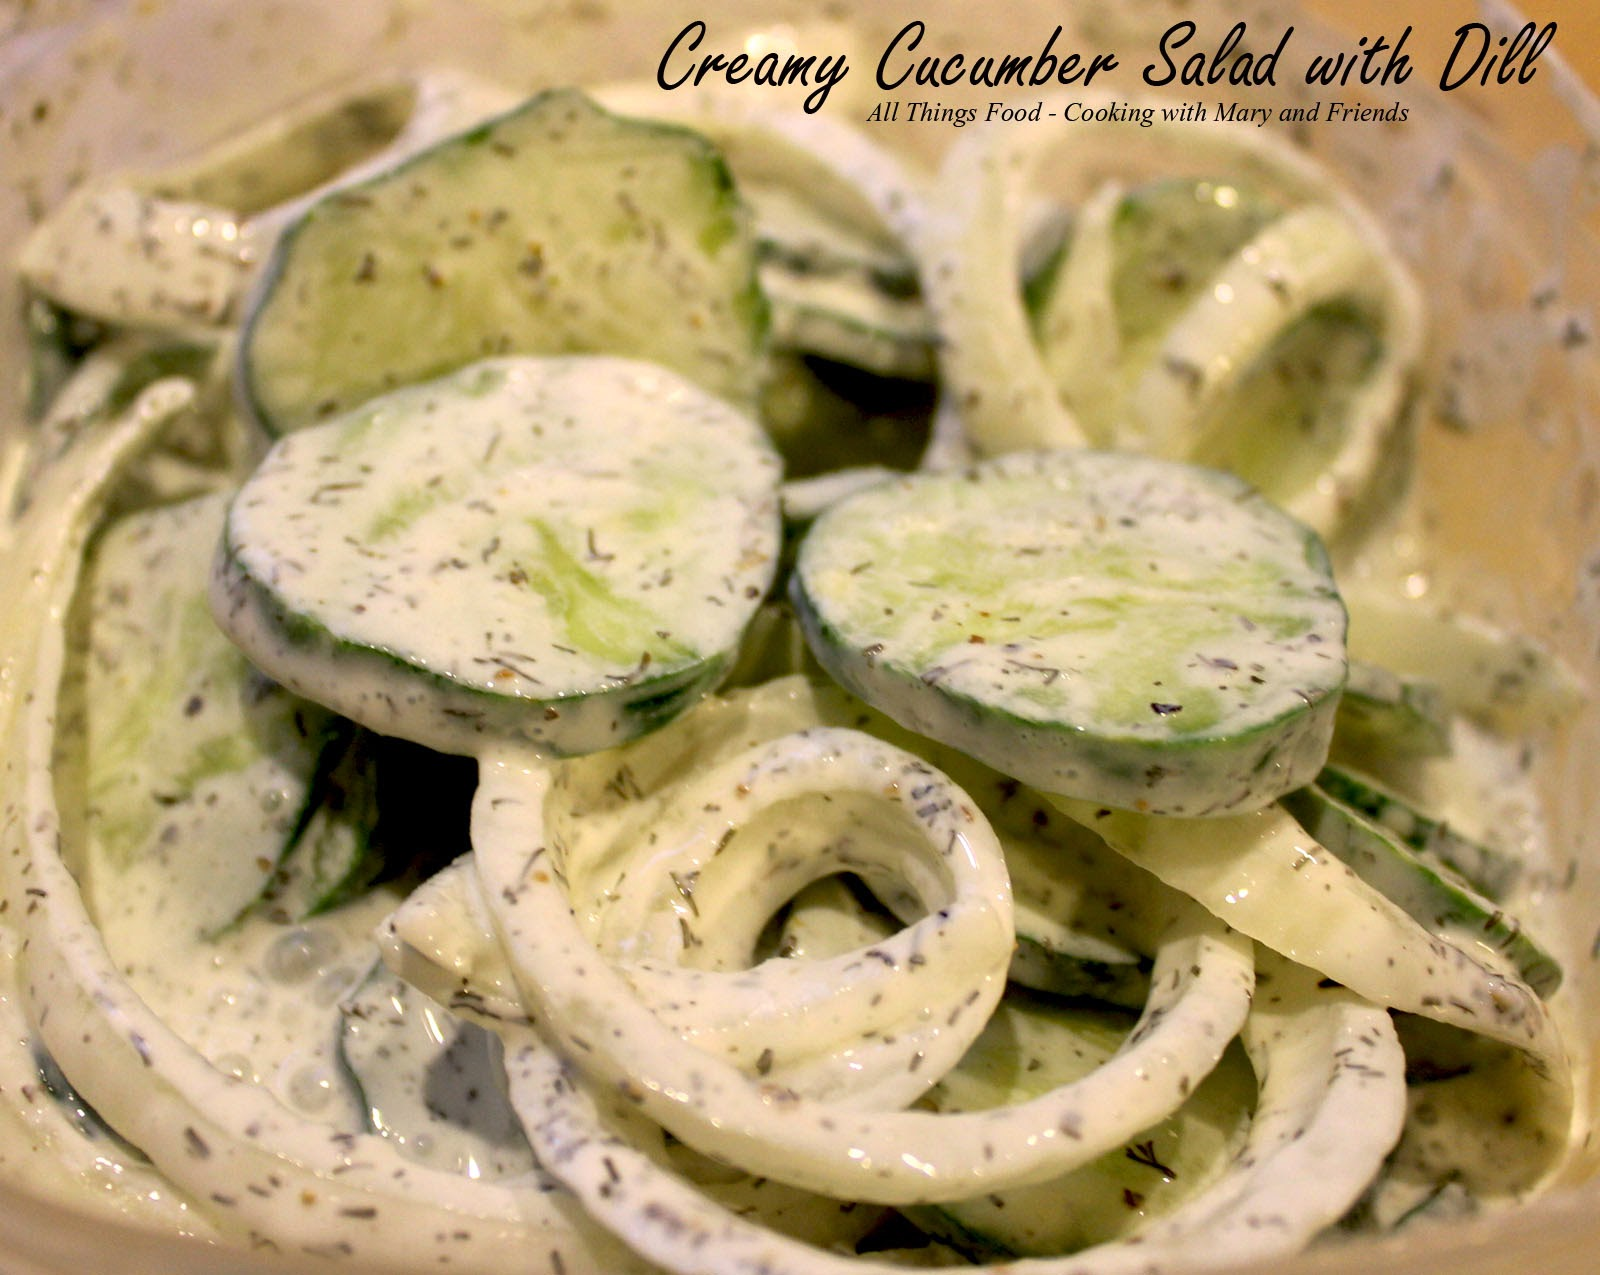 Cooking With Mary and Friends: Creamy Cucumber Salad with Dill